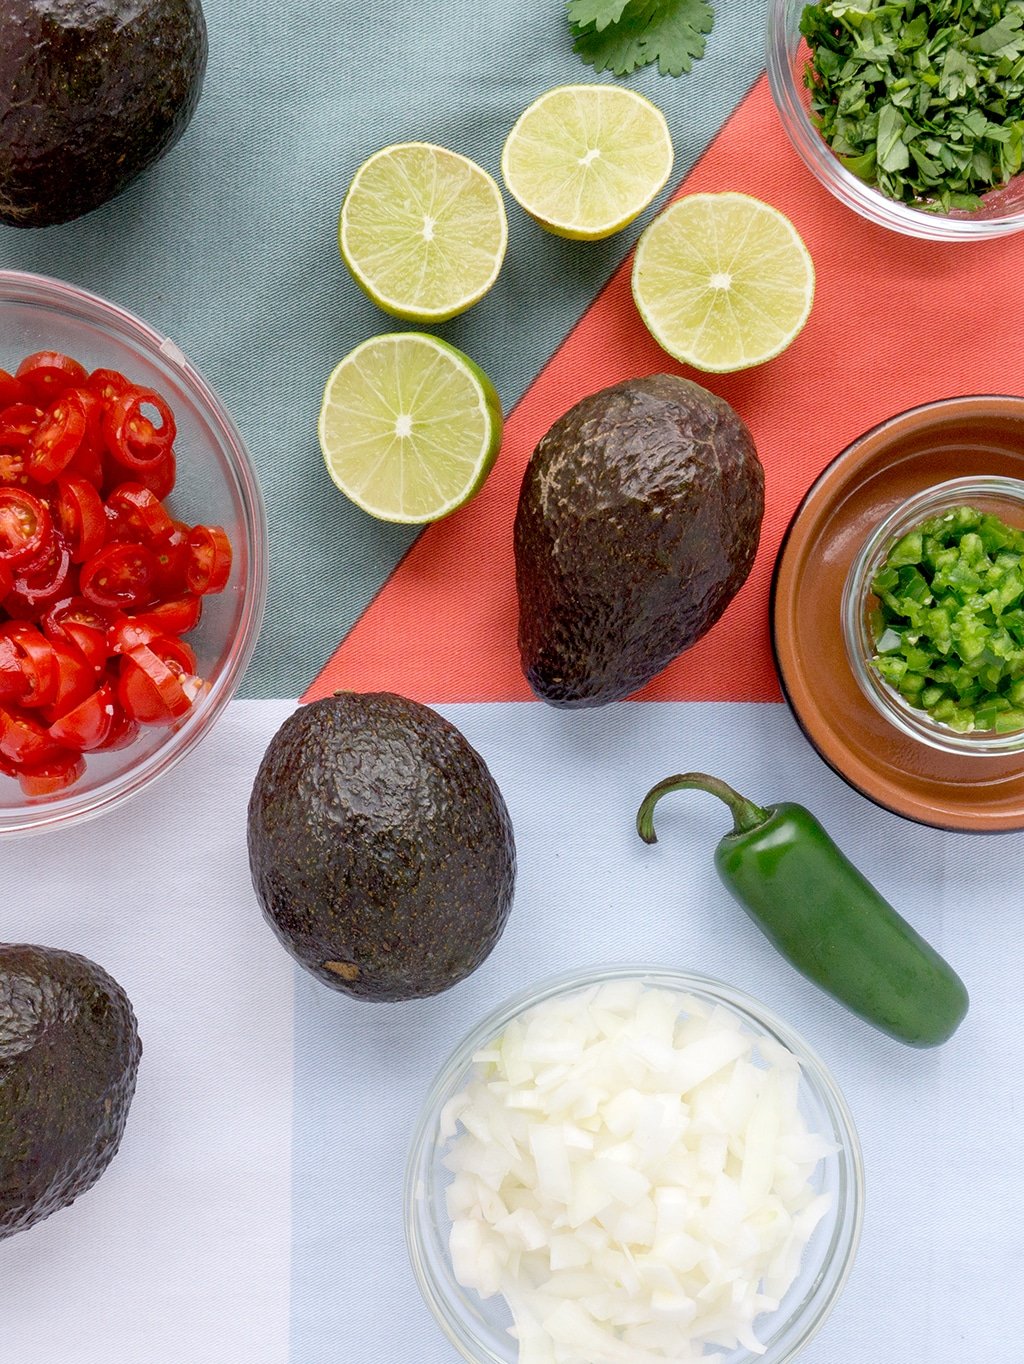 The BEST Guacamole Recipe! This is our go to for healthy snacking - my favorite is on top of a sea salt rice cake or for breakfast on top of an english muffin with an egg. But it's also a delicious appetizer for dipping your favorite chips! | GUACAMOLE | MEXICAN | DIPS | PARTY | GAME DAY | APPETIZERS | Recipe at OatandSesame.com